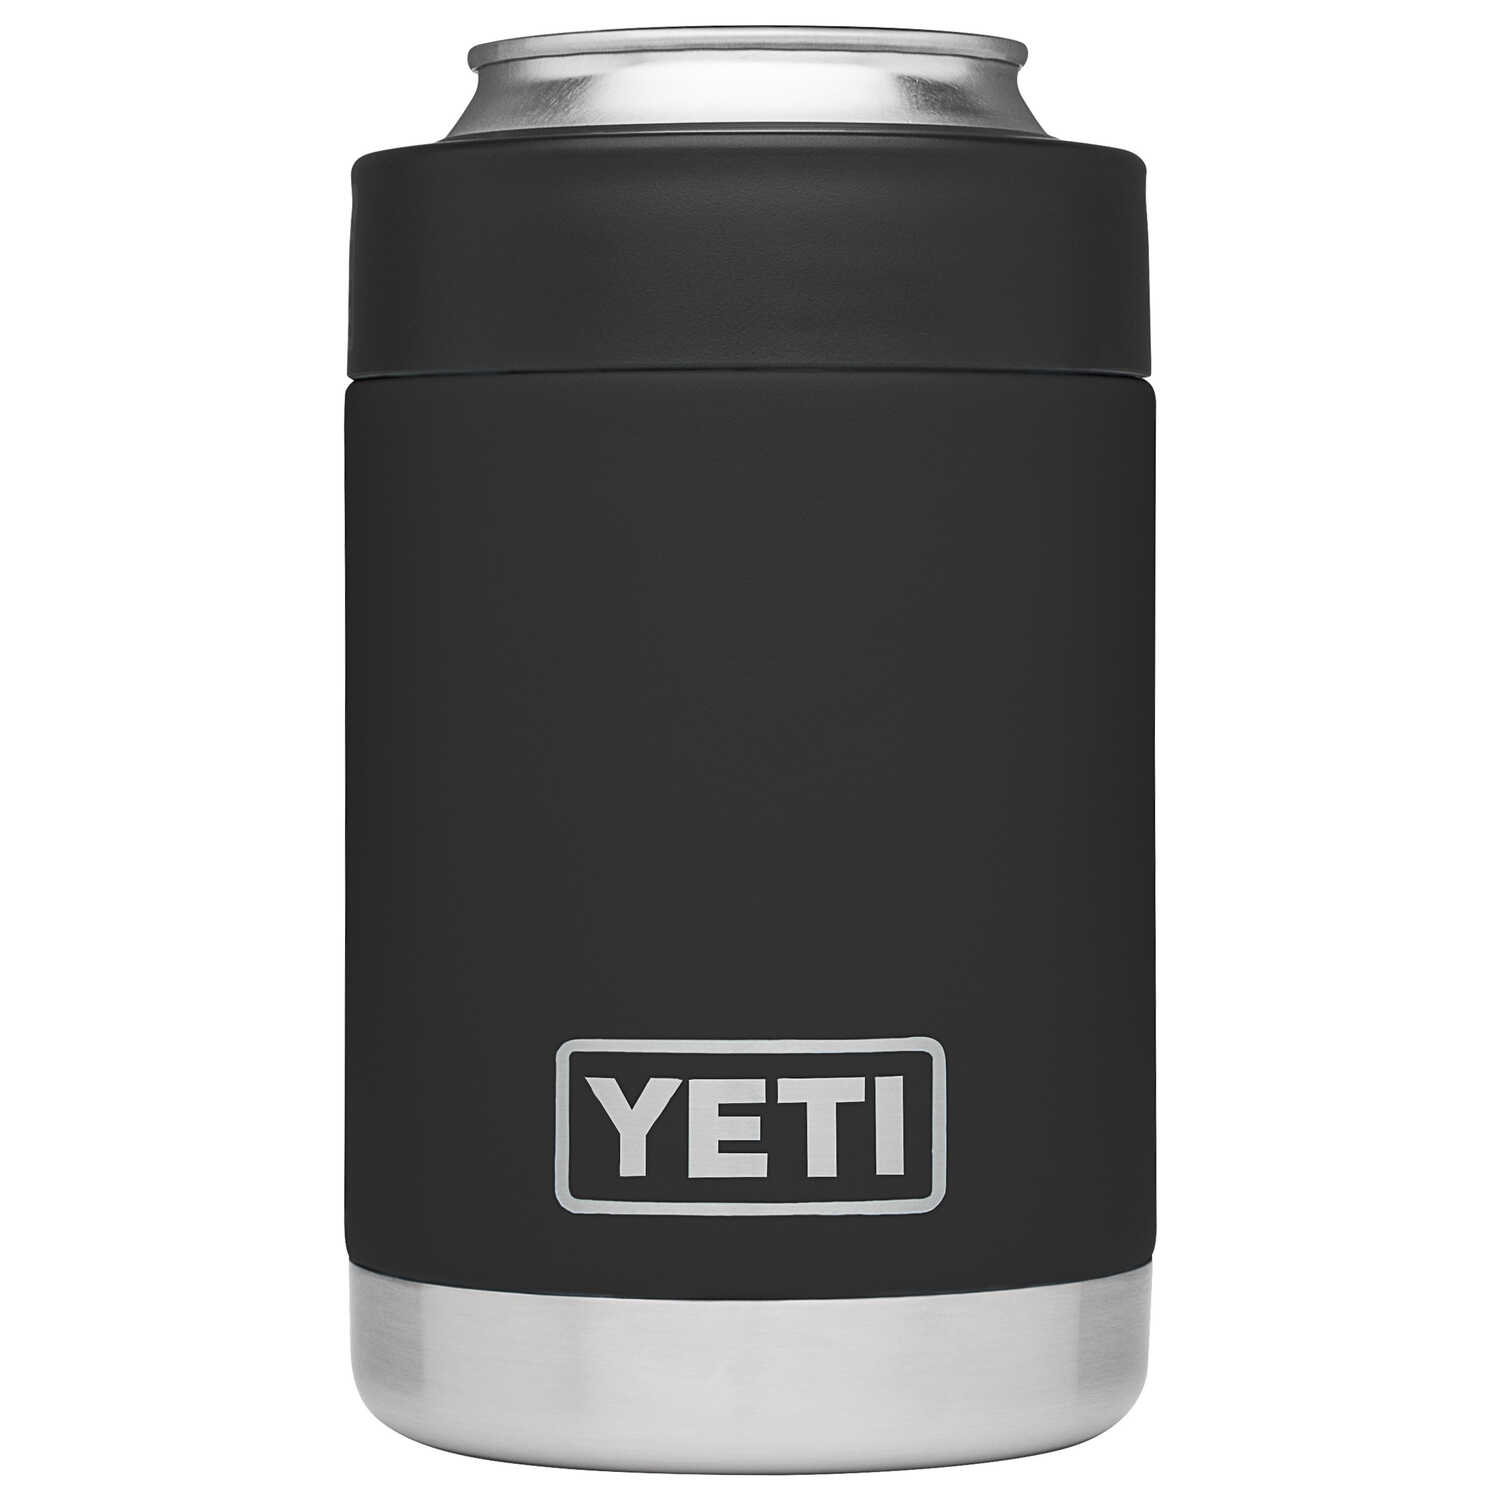 YETI  Rambler Colster  Black  Stainless Steel  BPA Free Beverage Holder  12